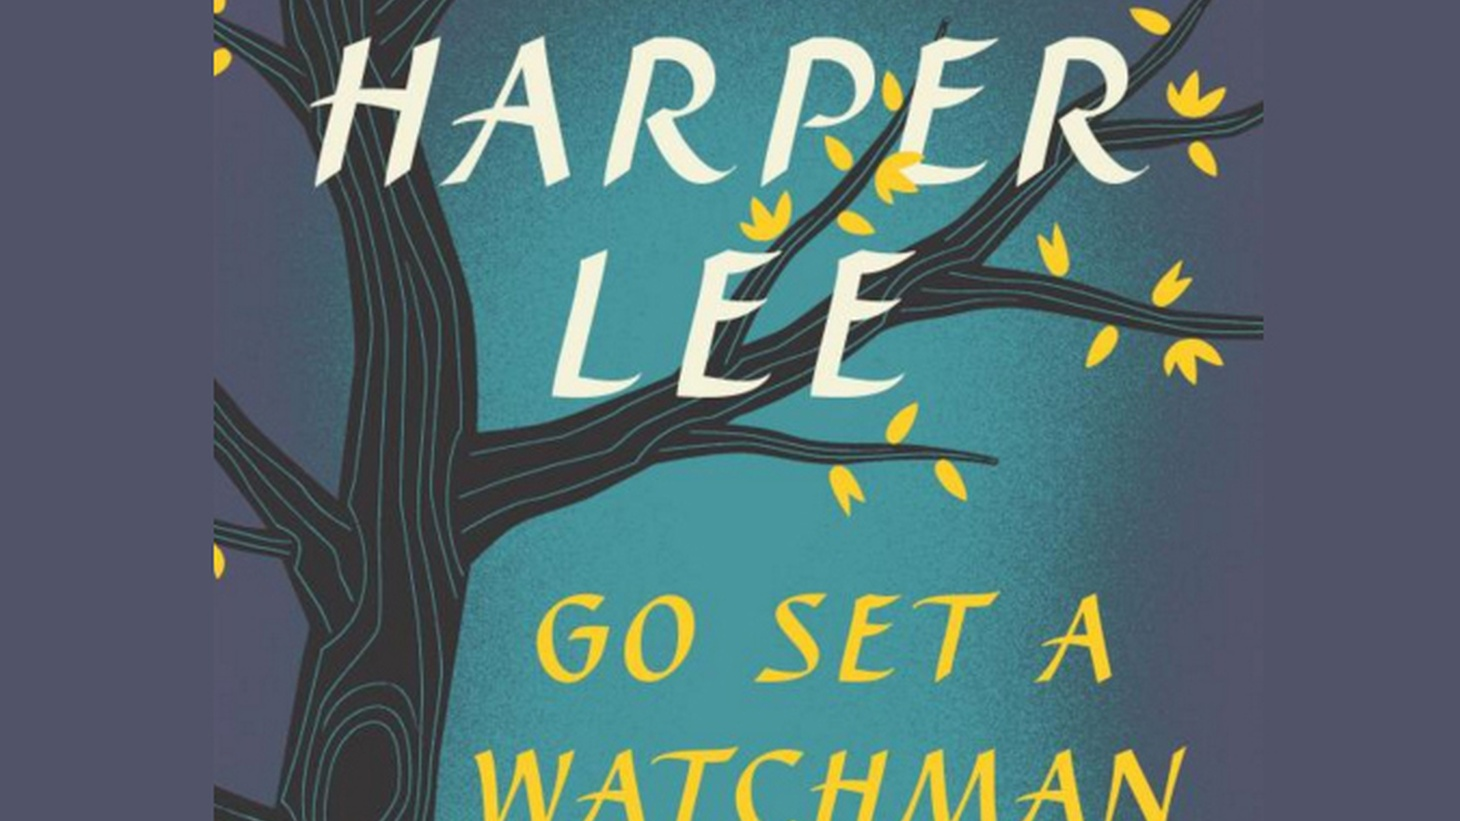 For more than half a century, Atticus Finch has been a model of integrity and tolerance for millions of readers. Now that's changed. In Go Set a Watchman, Harper Lee's follow up to To Kill a Mockingbird, Atticus has turned into a racist.